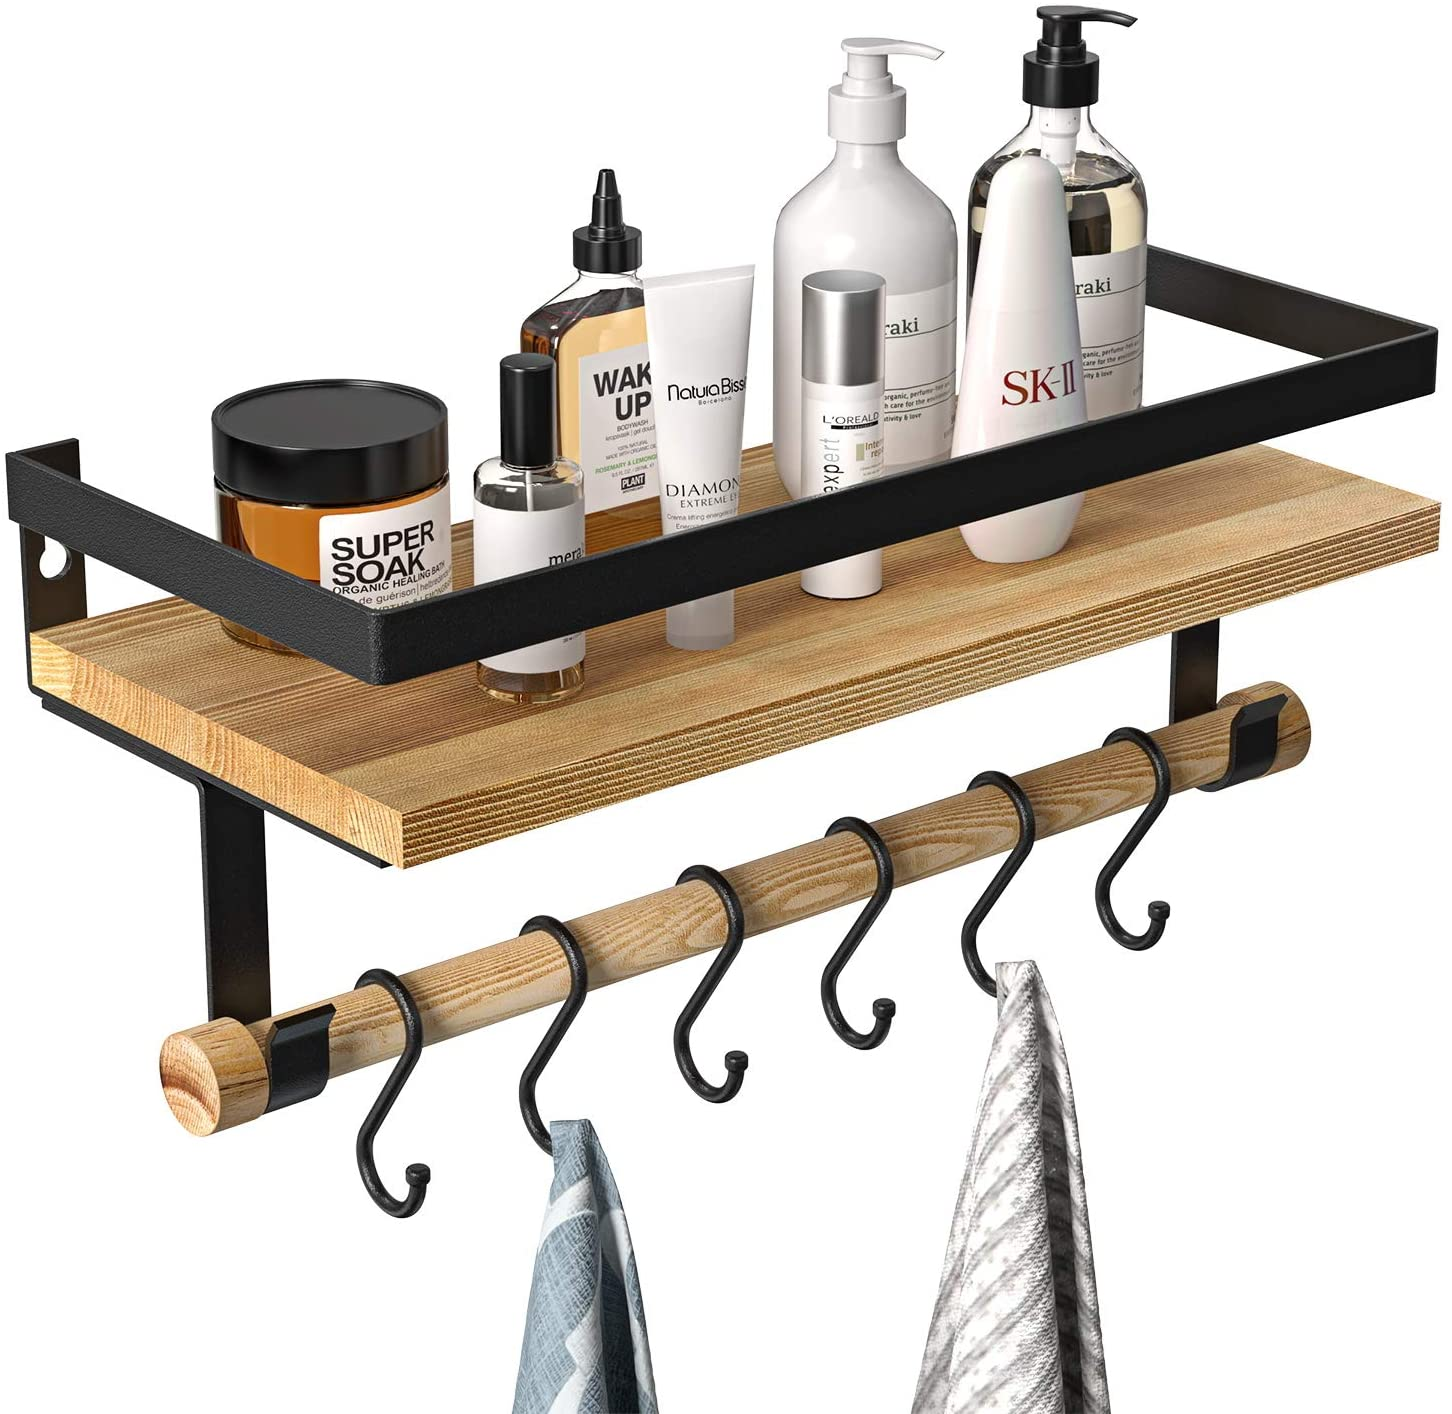 Floating Shelf with Removable Towel Bar and 6 Hooks, Rustic Wood Wall Mounted Storage Shelf, Coffee Bar Decor, for Bathroom, Kitchen,Living Room, Bedroom by AMADA HOMEFURNISHING AMFS09